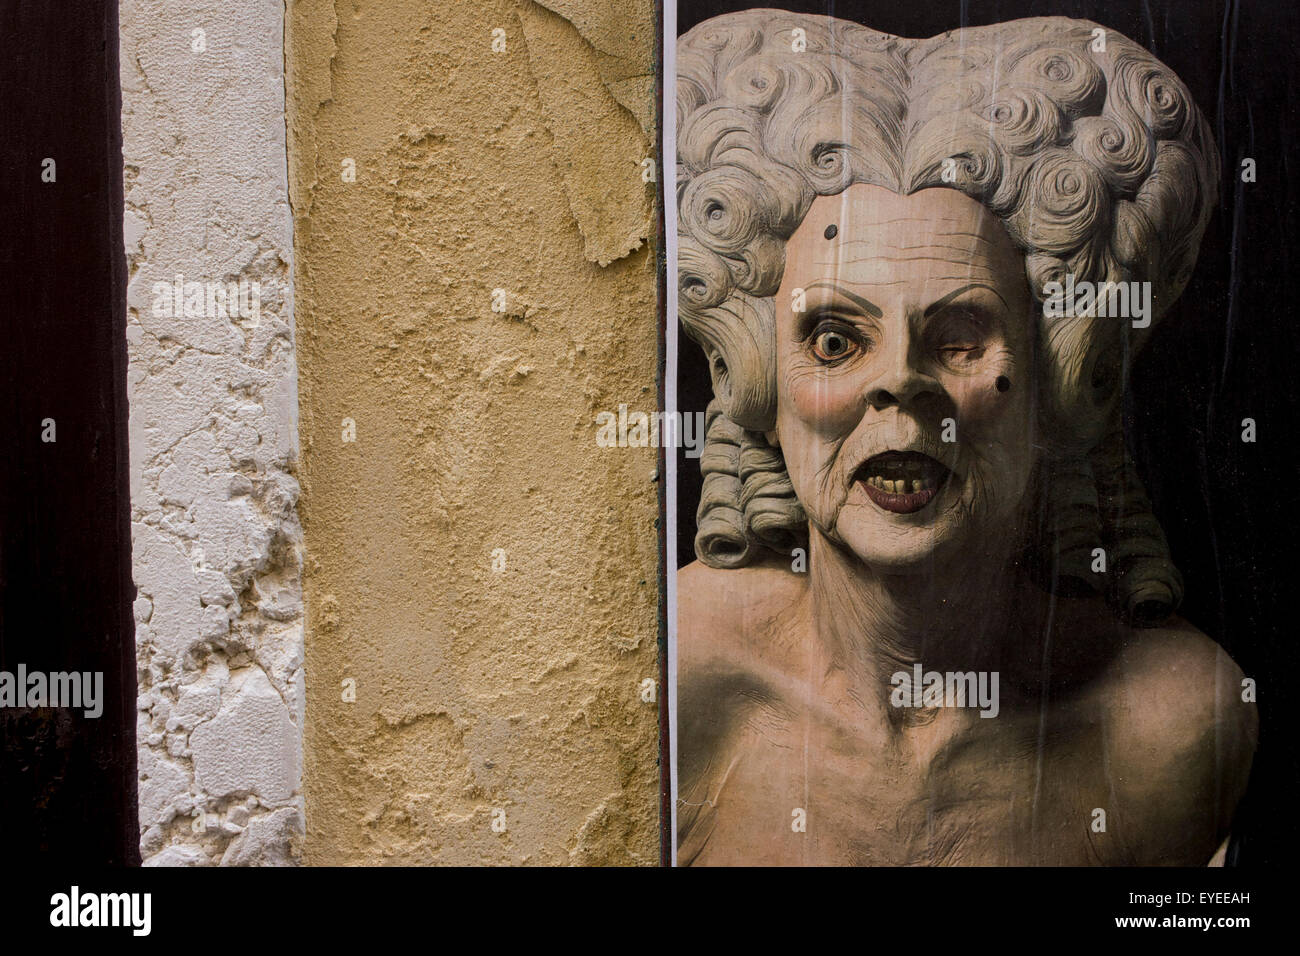 The texture of wall plaster echoed in the skin of a theatrical character in the San Marco shopping district of Venice, - Stock Image